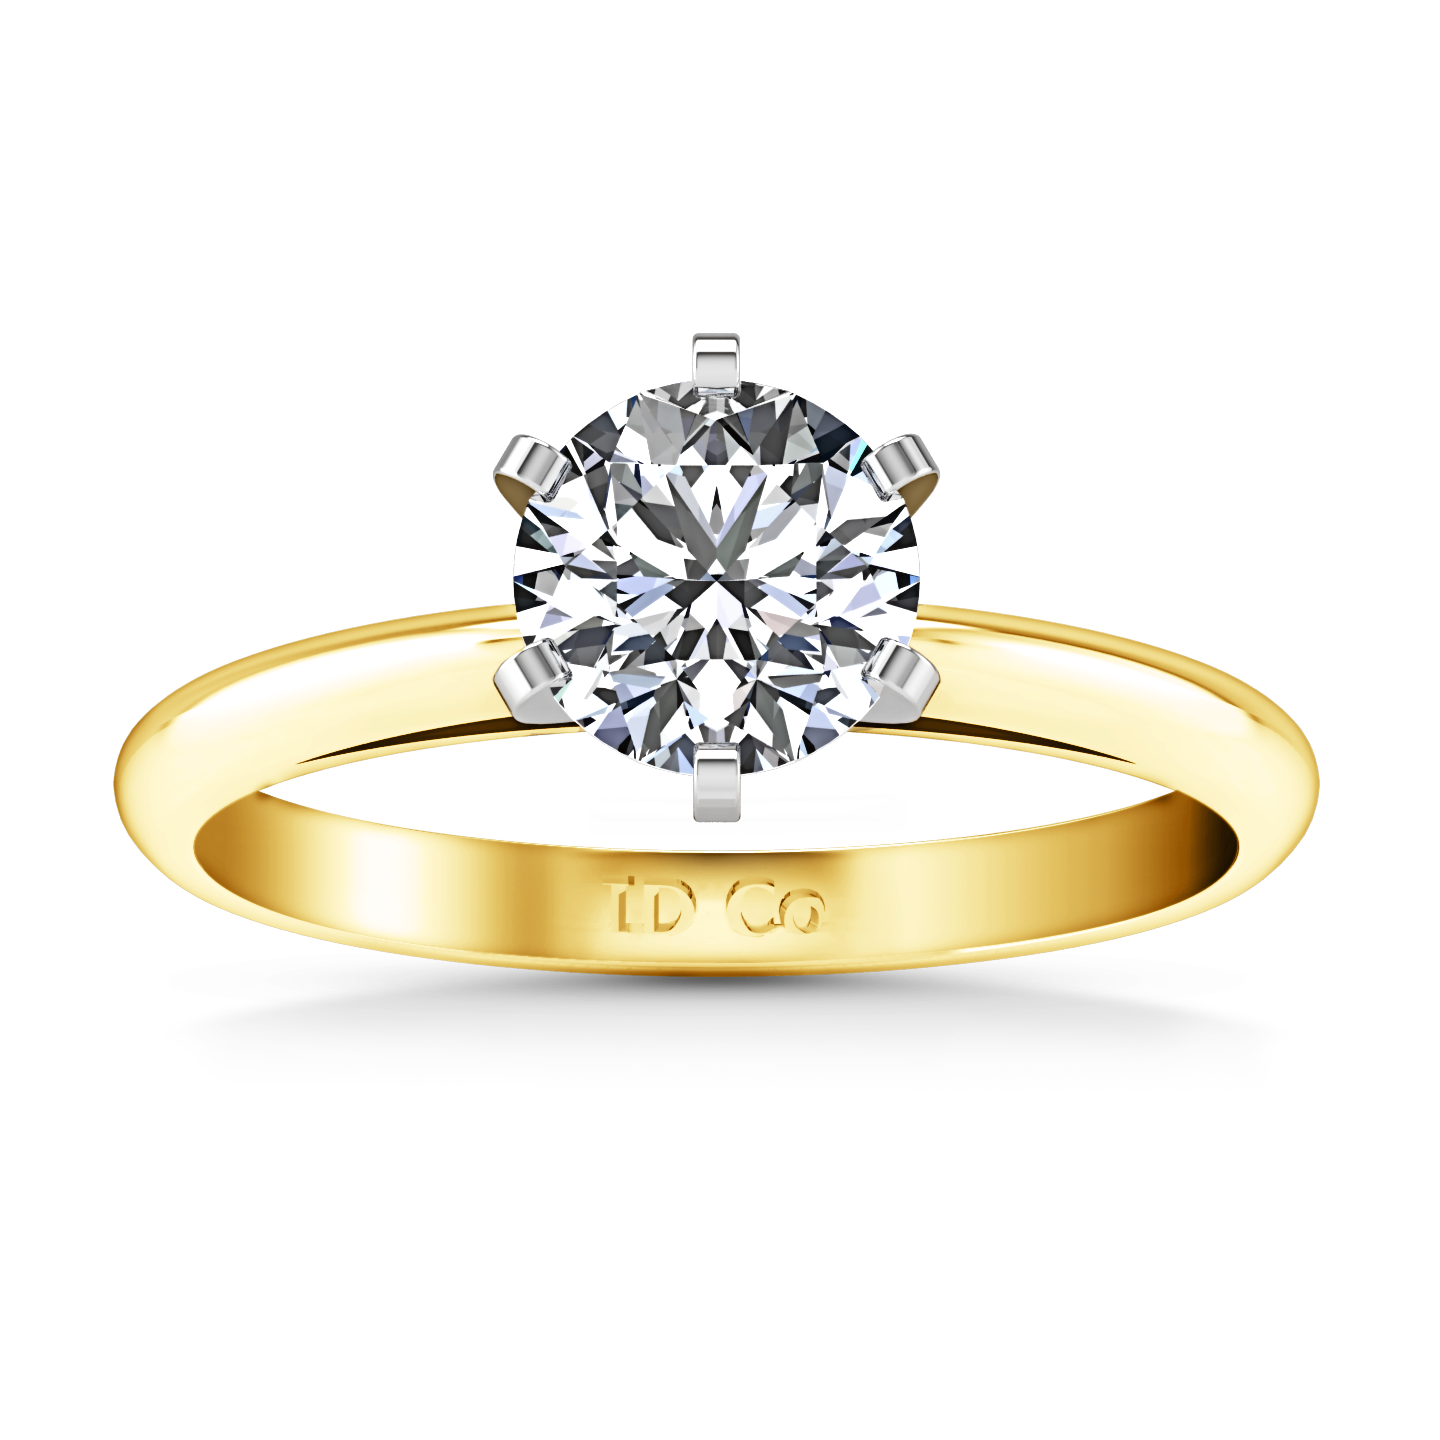 edge in diamond diamonds band cut solitaire rings knife yellow product natalie gold ring bands engagement cushion